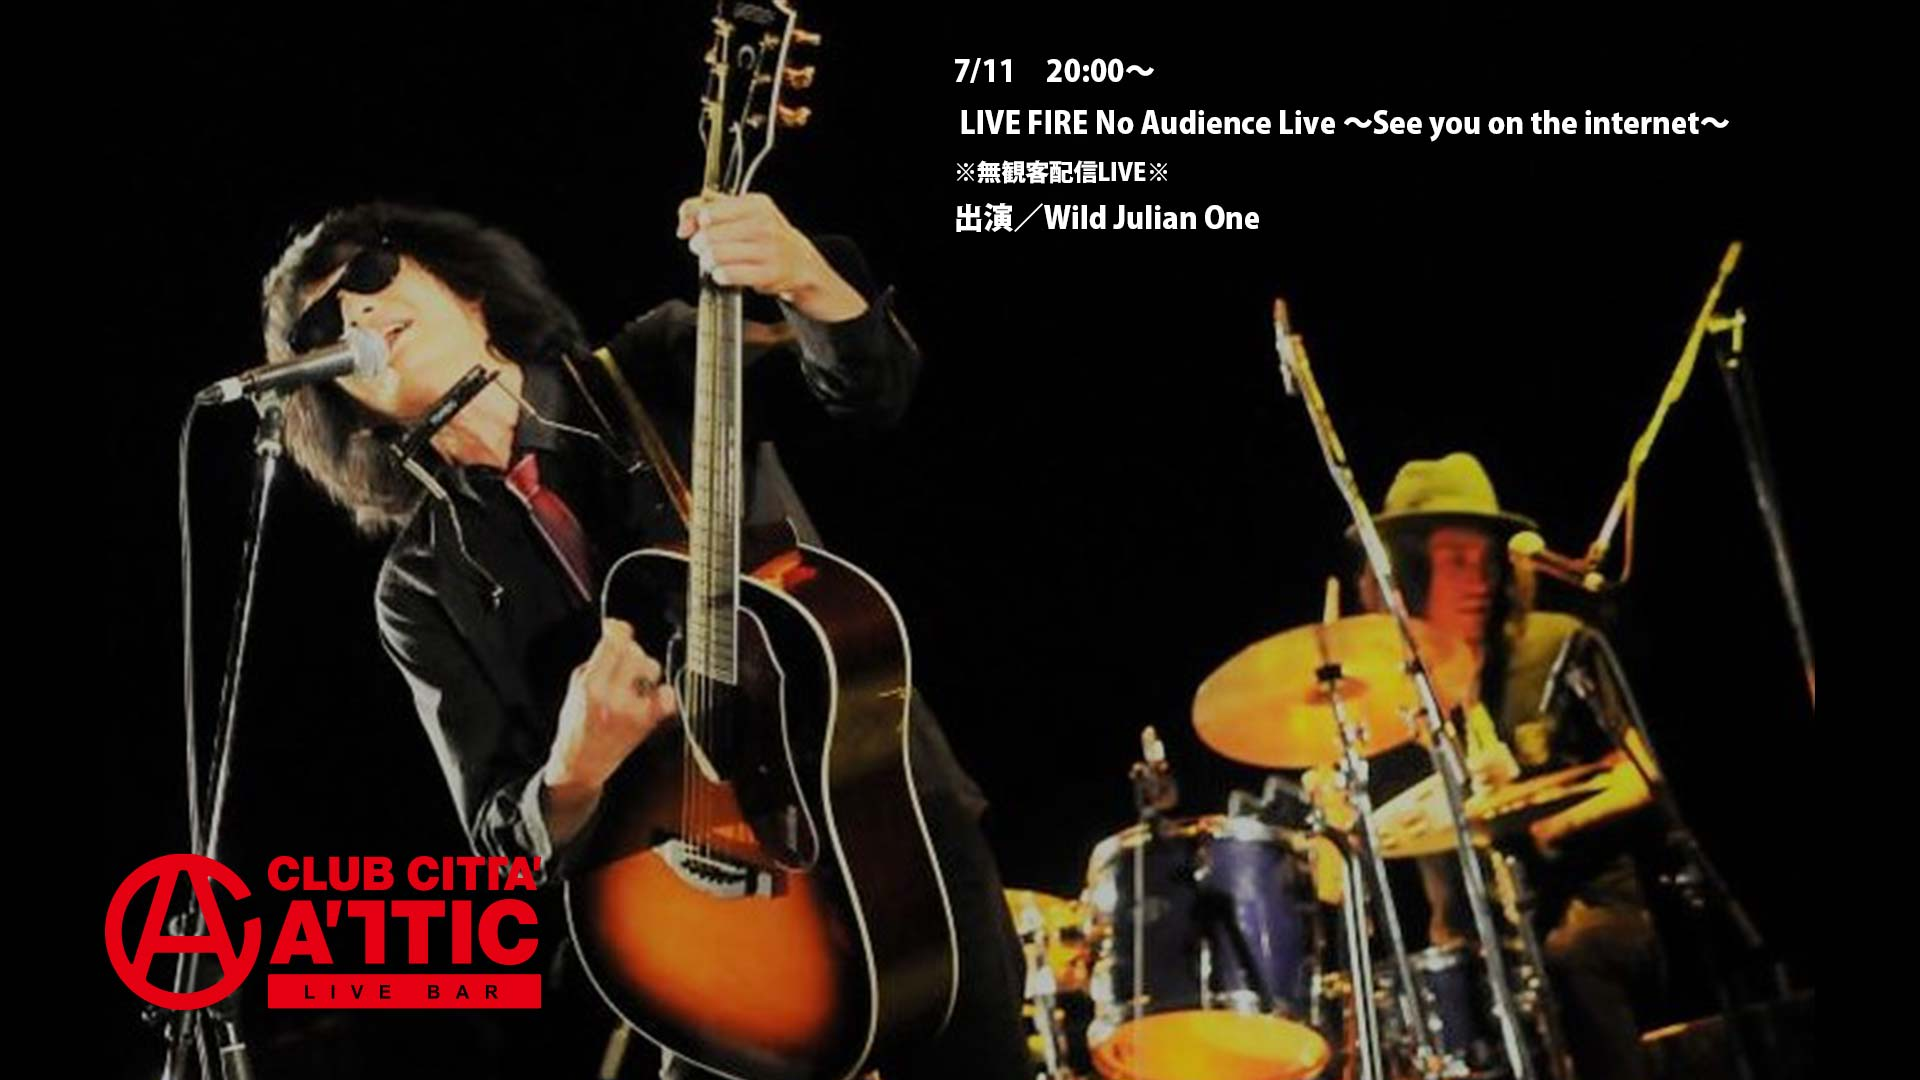 LIVE FIRE No Audience Live 〜See you on the internet〜 ※無観客配信LIVE※